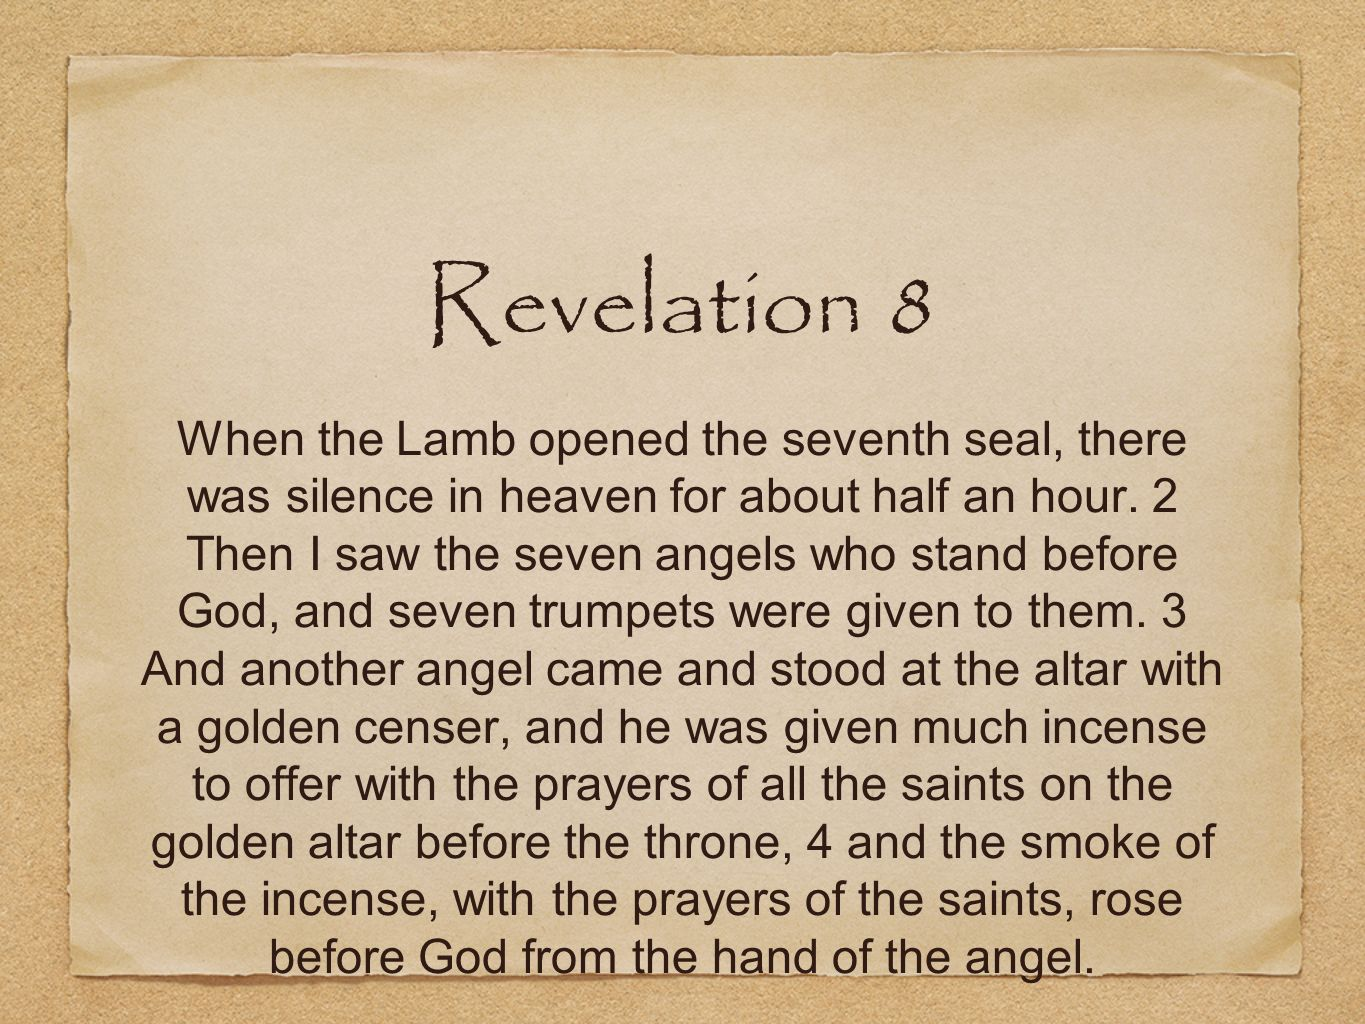 Revelation 8 When the Lamb opened the seventh seal, there was silence in heaven for about half an hour. 2 Then I saw the seven angels who stand before